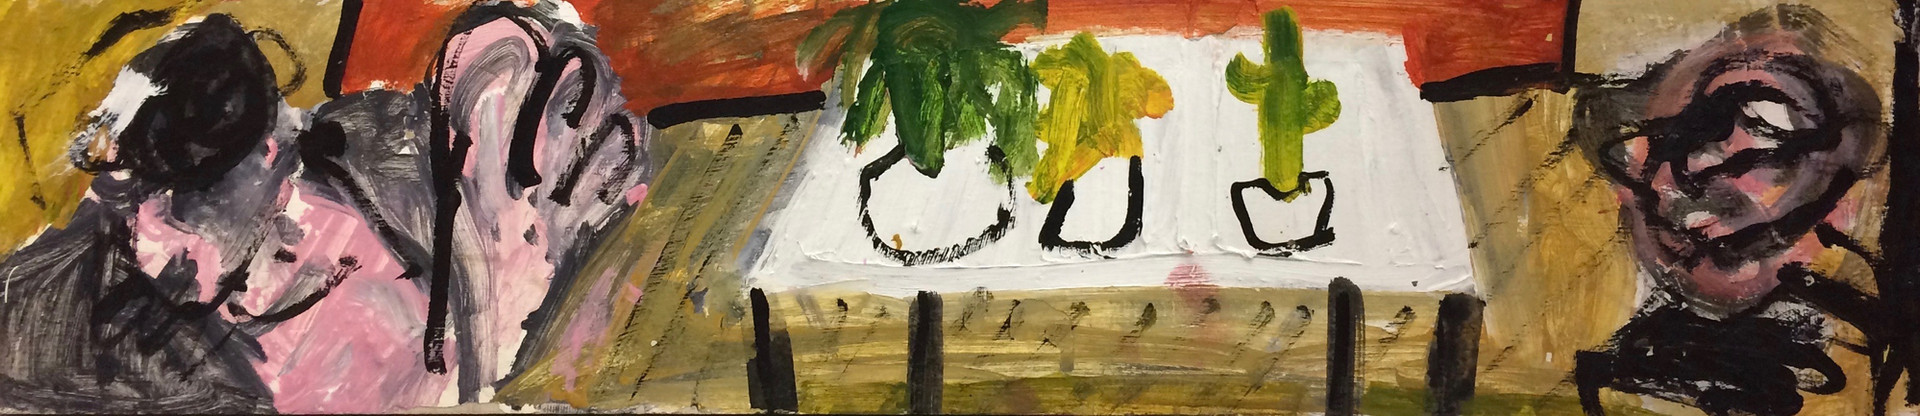 Planted On The Table, And On The Floor, 2017, oil om board 103 x 23 cm